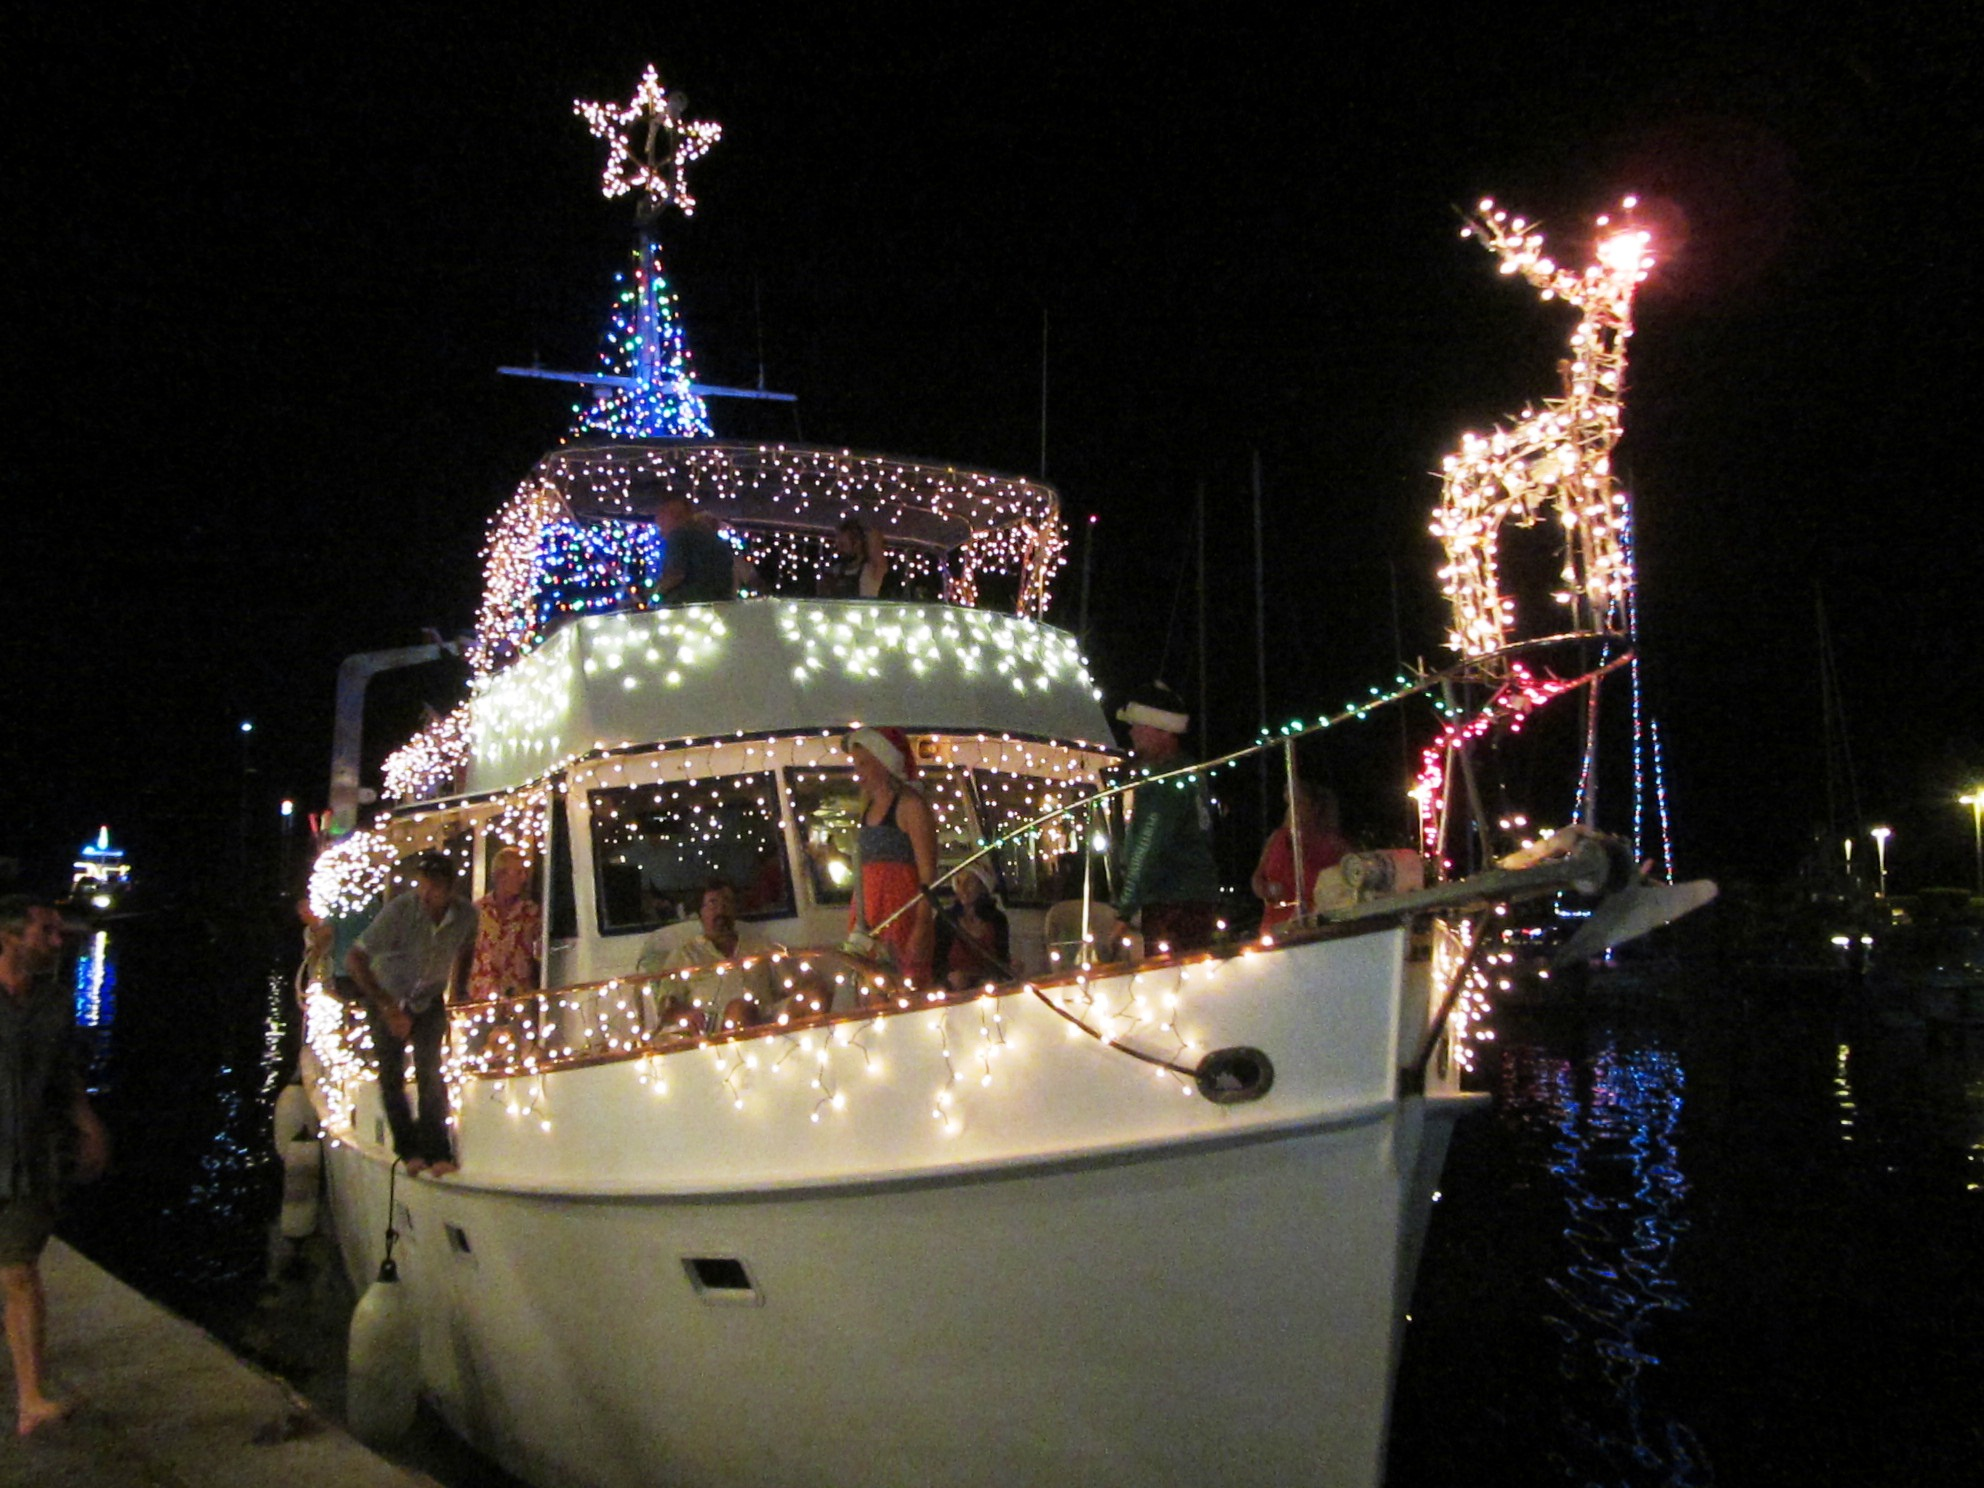 Boat in the parade